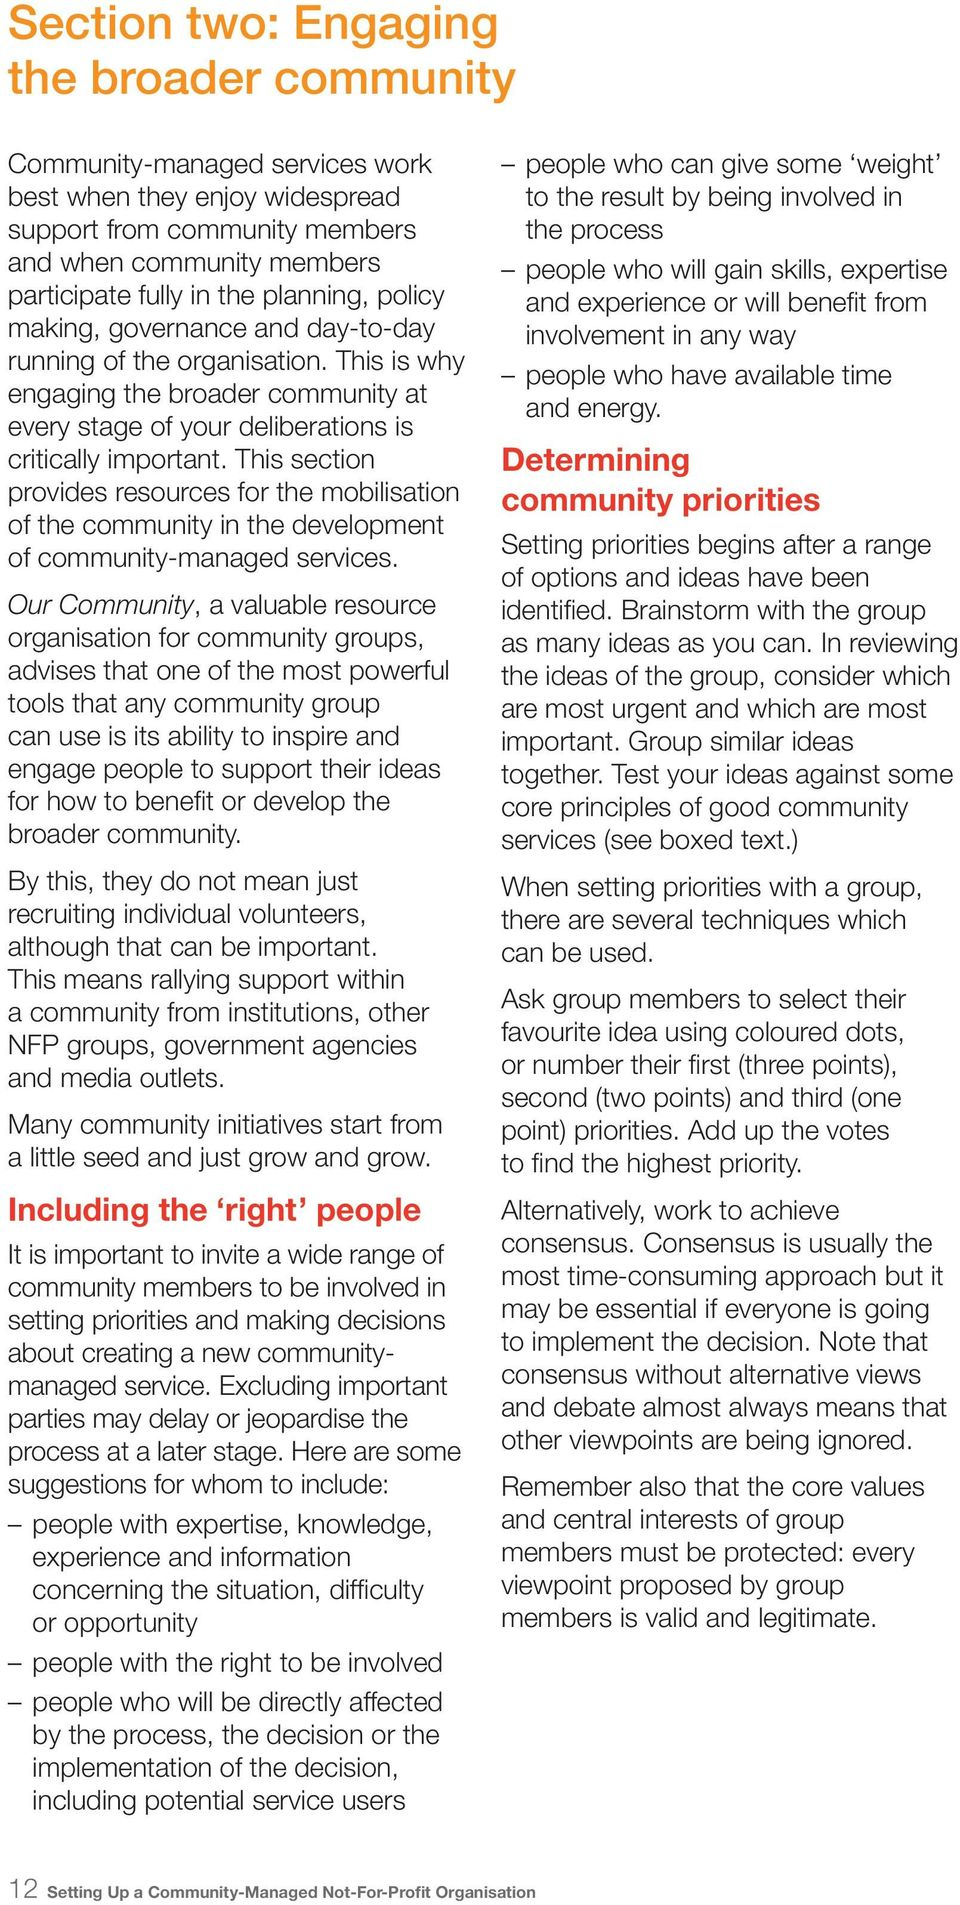 This section provides resources for the mobilisation of the community in the development of community-managed services.